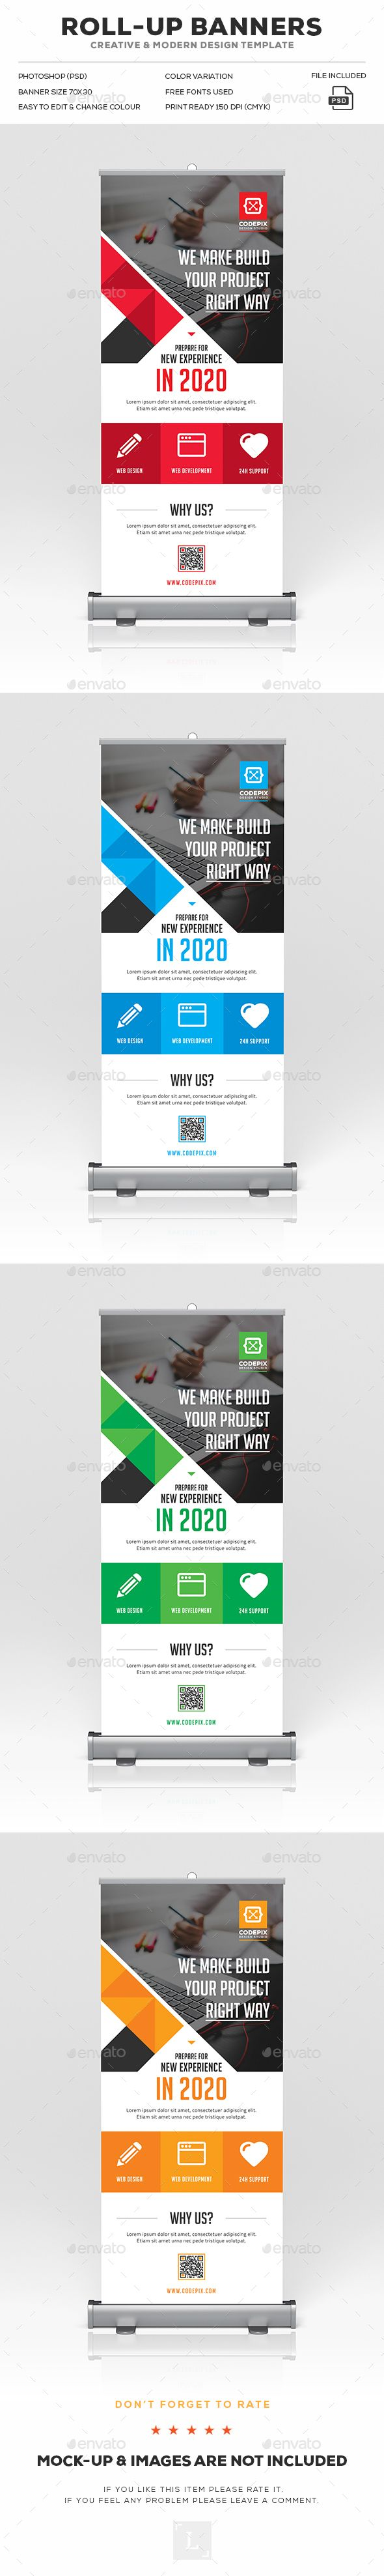 corporate roll up banner ad design banner template and design corporate roll up banner ads design template signage print template psd here